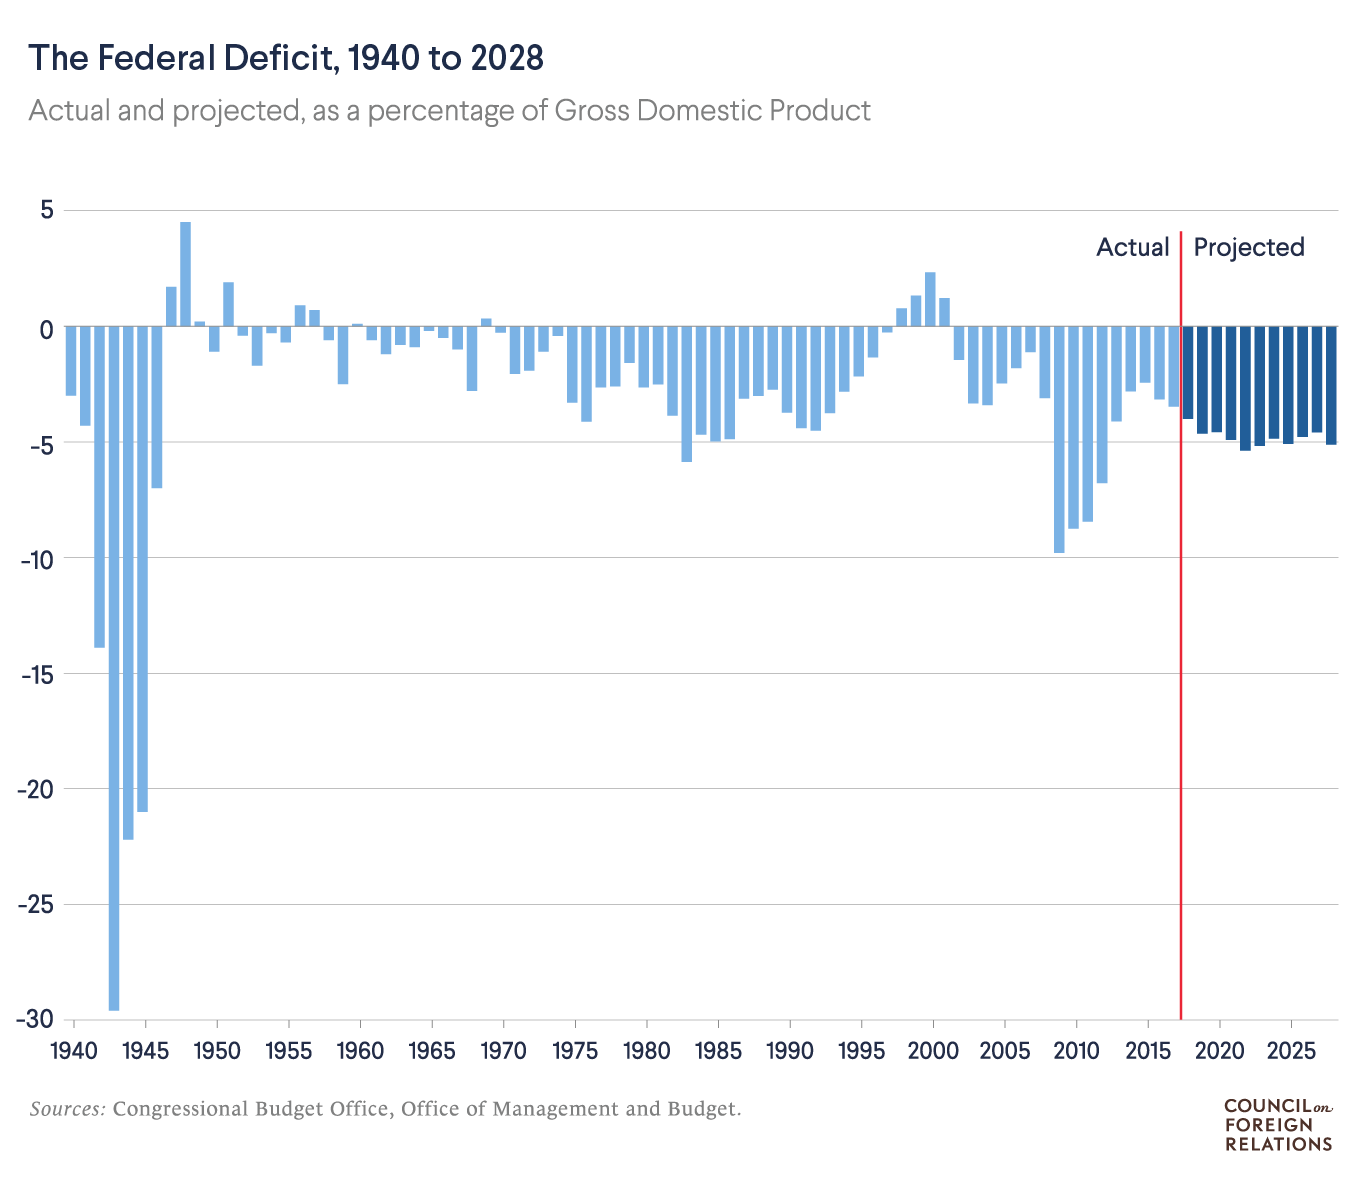 The National Debt Dilemma | Council on Foreign Relations